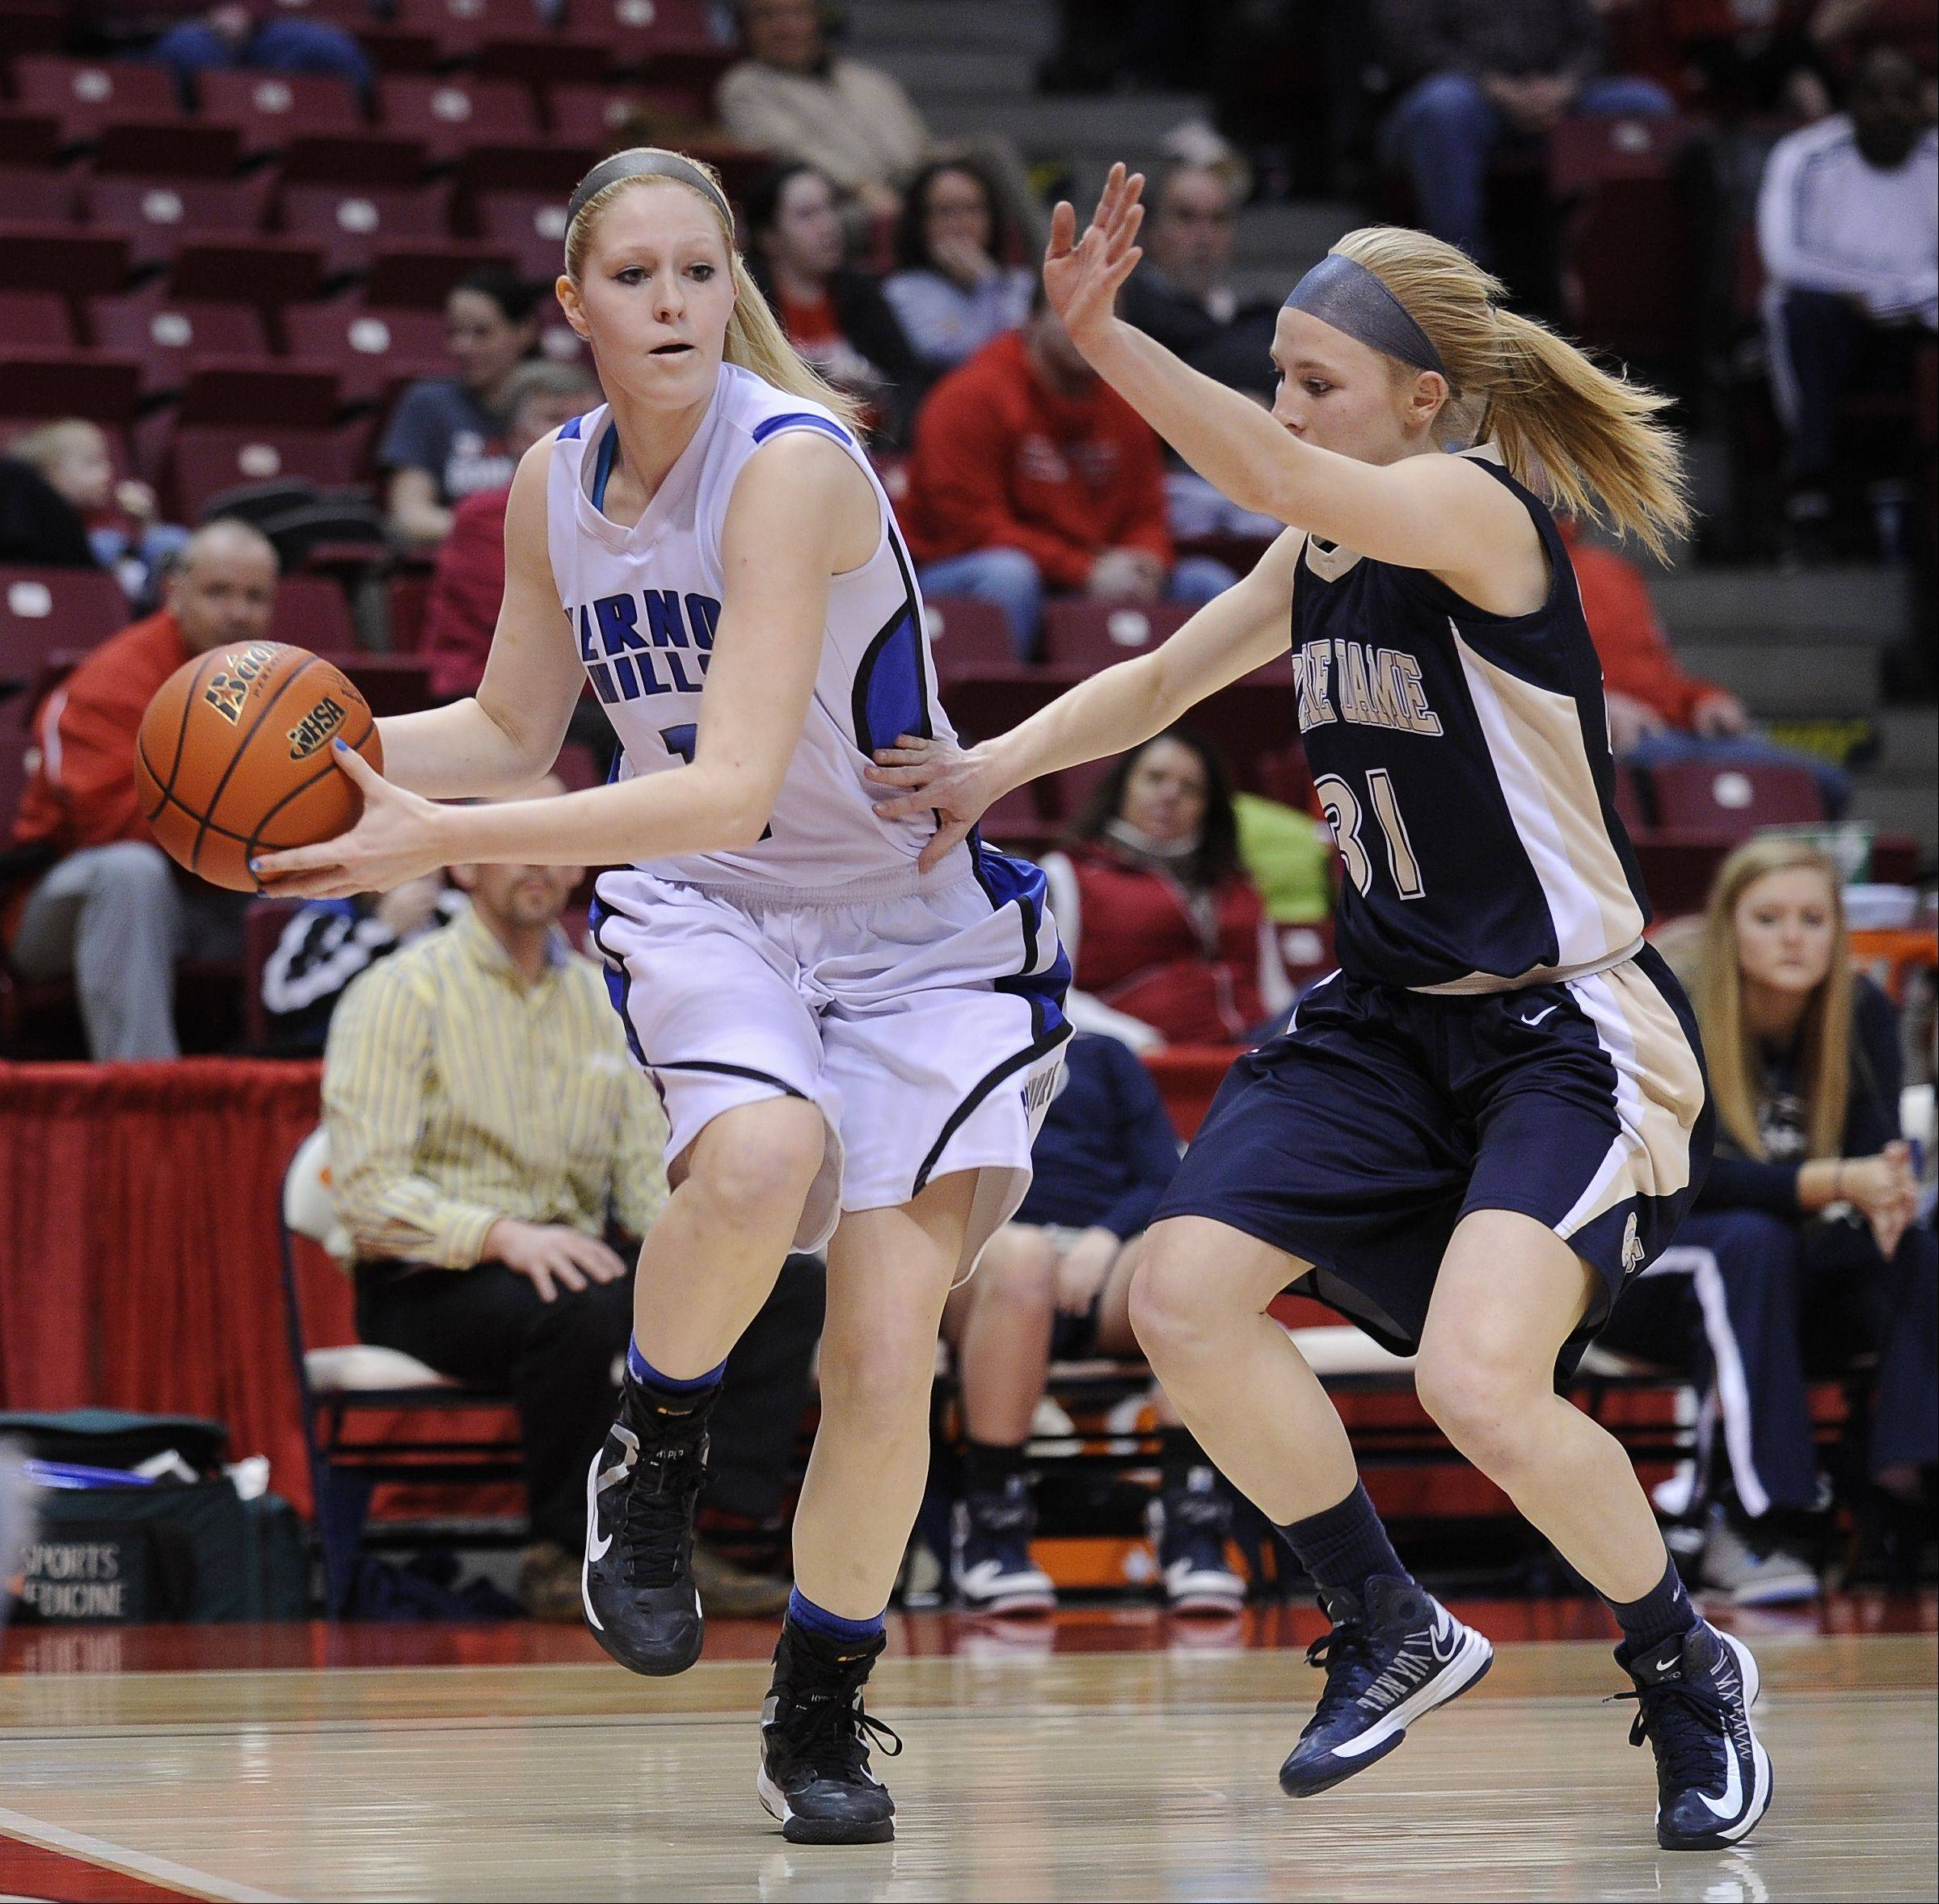 Images from the Vernon Hills vs. Notre Dame Class 3A girls state basketball championship on Saturday, Mar. 2 at the Redbird Arena in Normal.